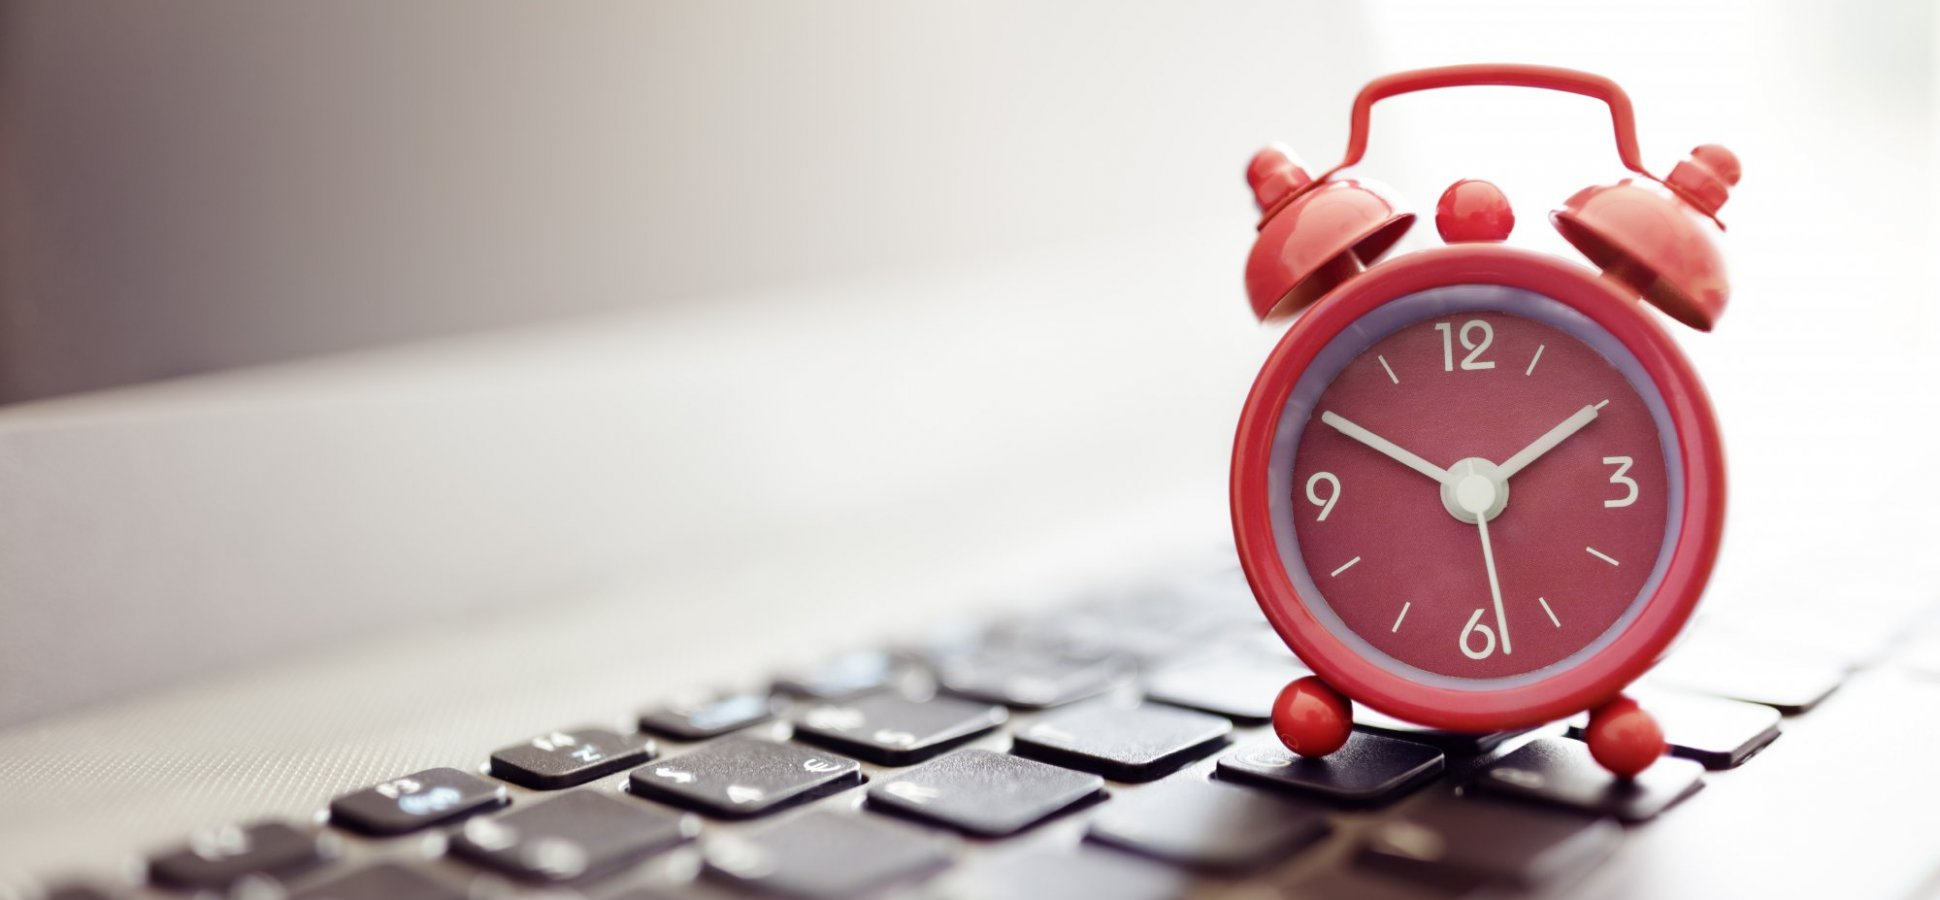 How the '5 Second Rule' Can Help You Fight the Urge to Procrastinate